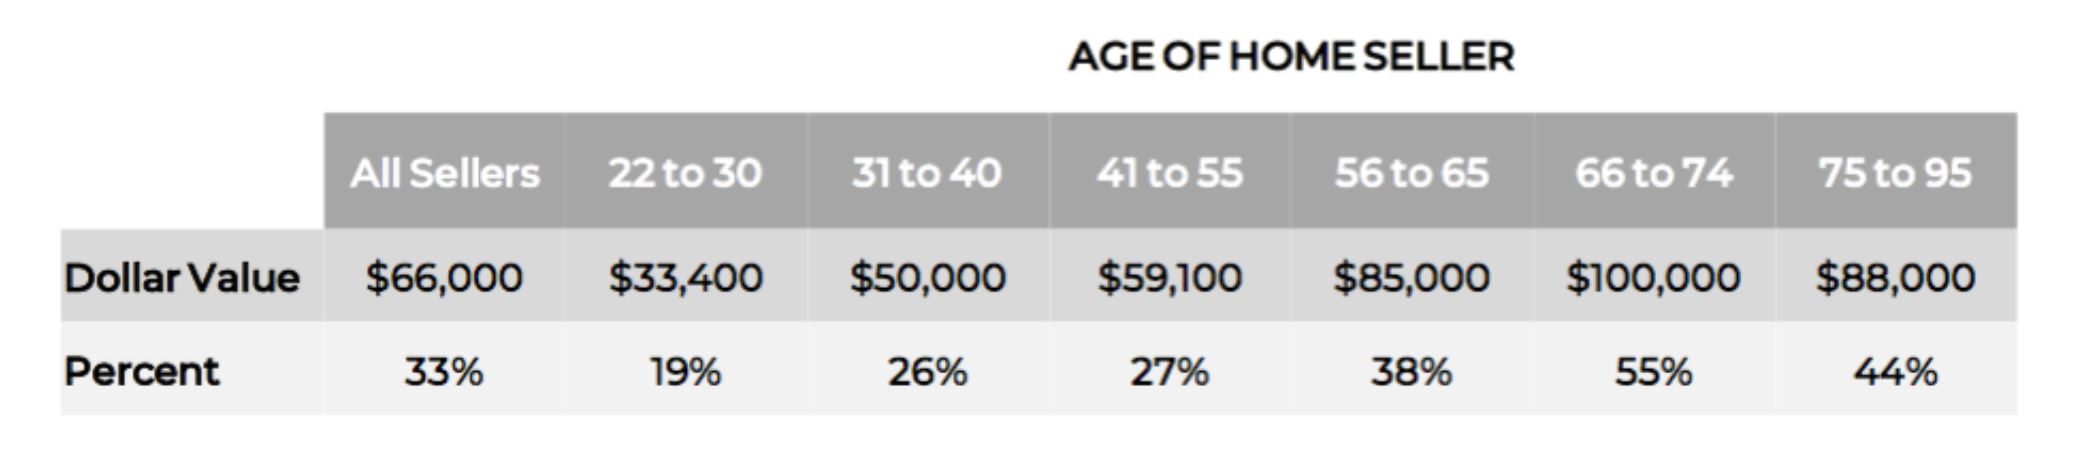 Realtor Magazine 2021 03 18 Chart of Baby Boomers being the richest home Sellers since the begining of the plandemic after going through the COVID-19 Coronavirus pandemic Hoey Team exp Realty